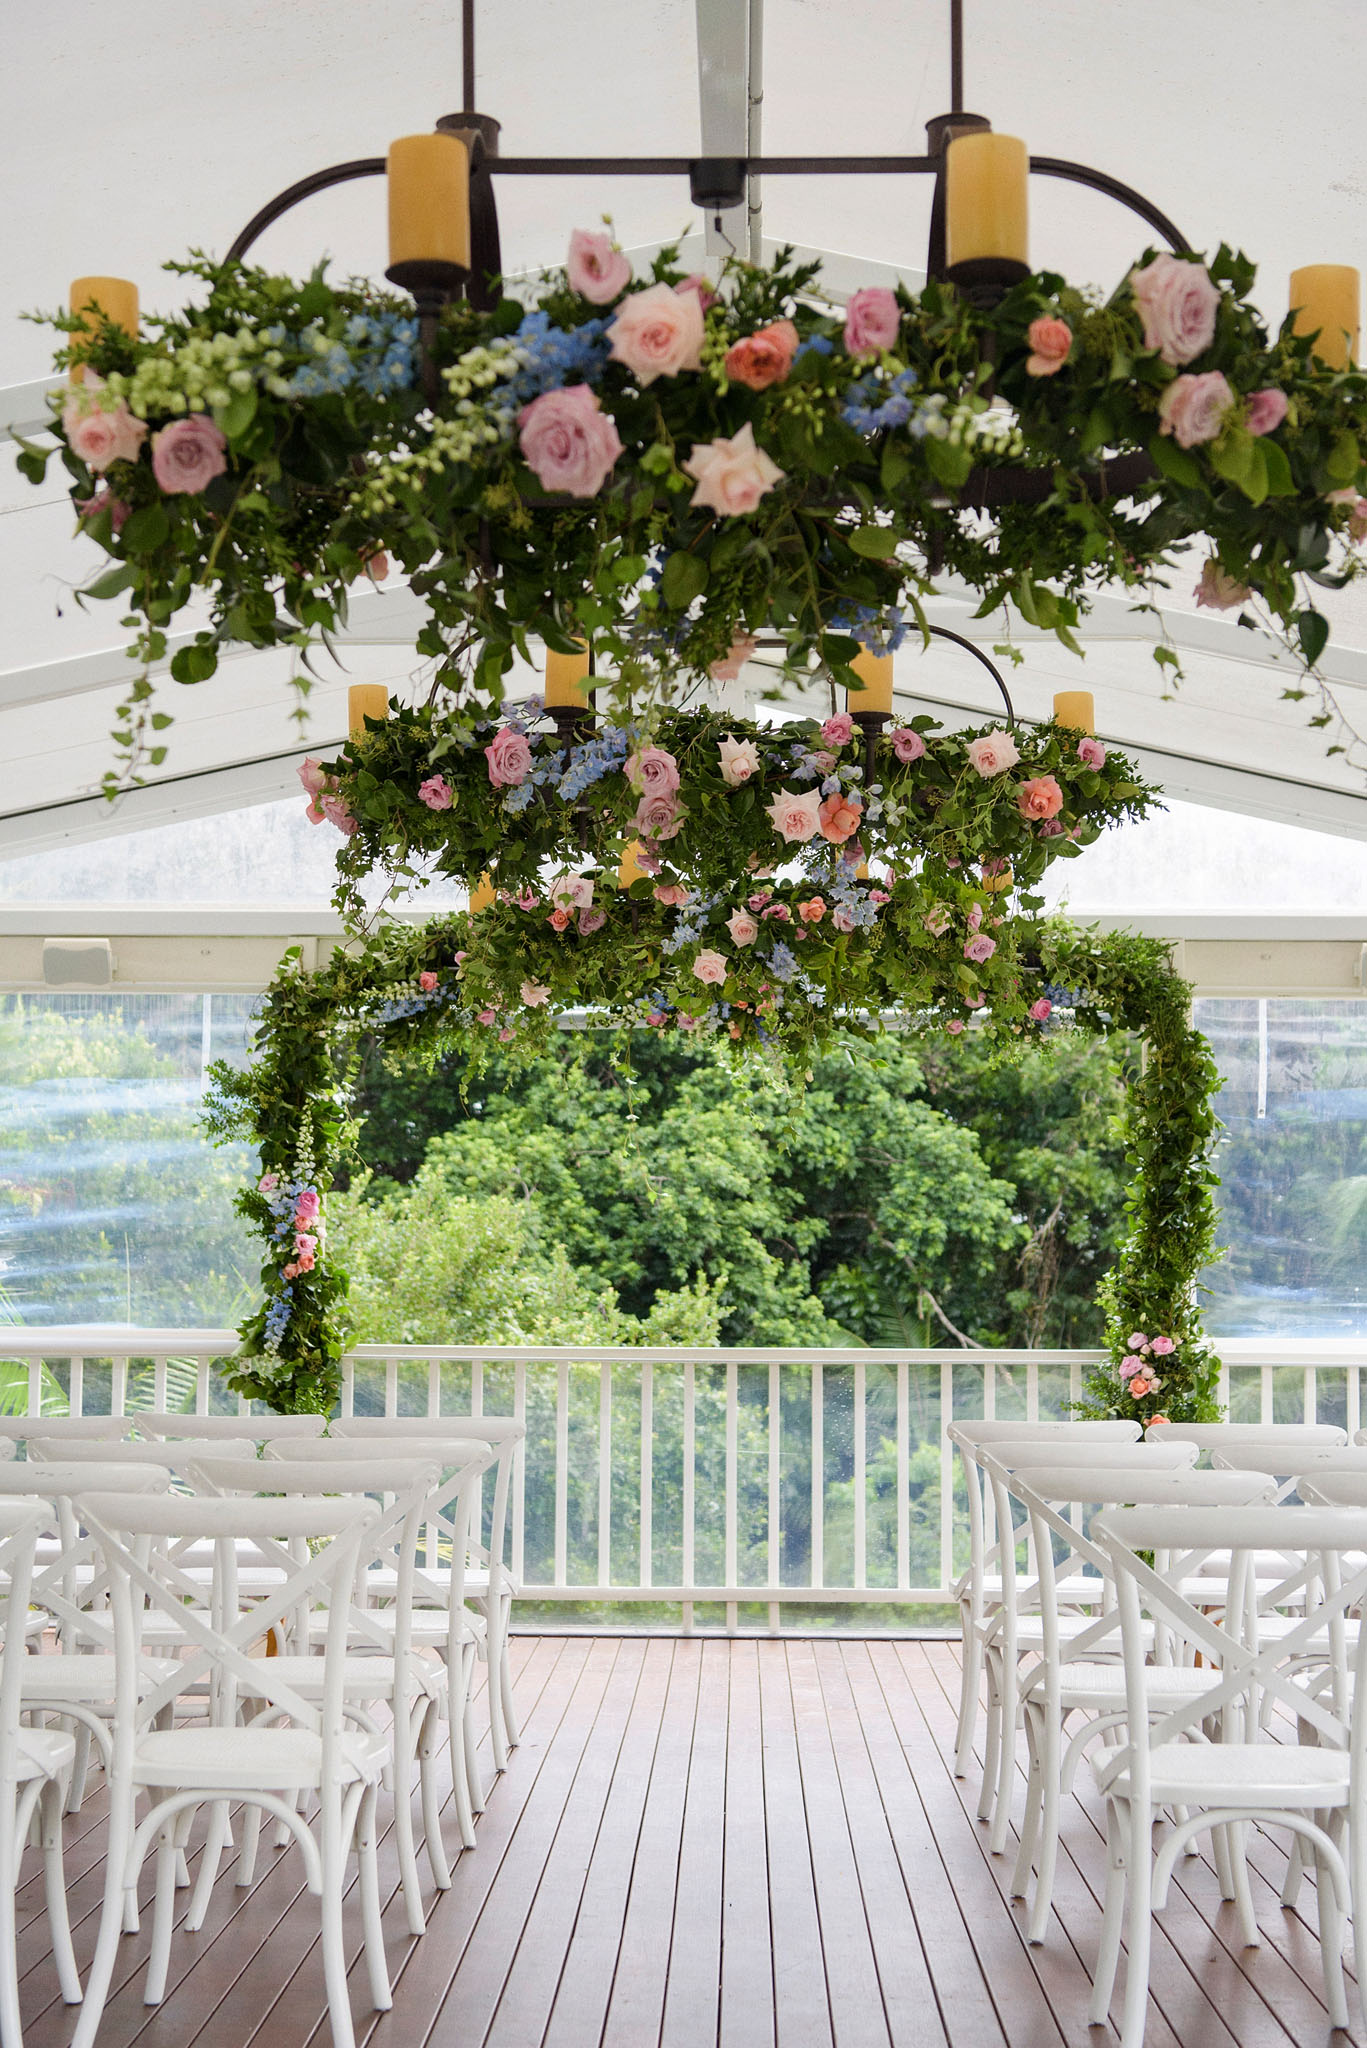 Chandelier wraps featuring lush greenery and pastel blooms